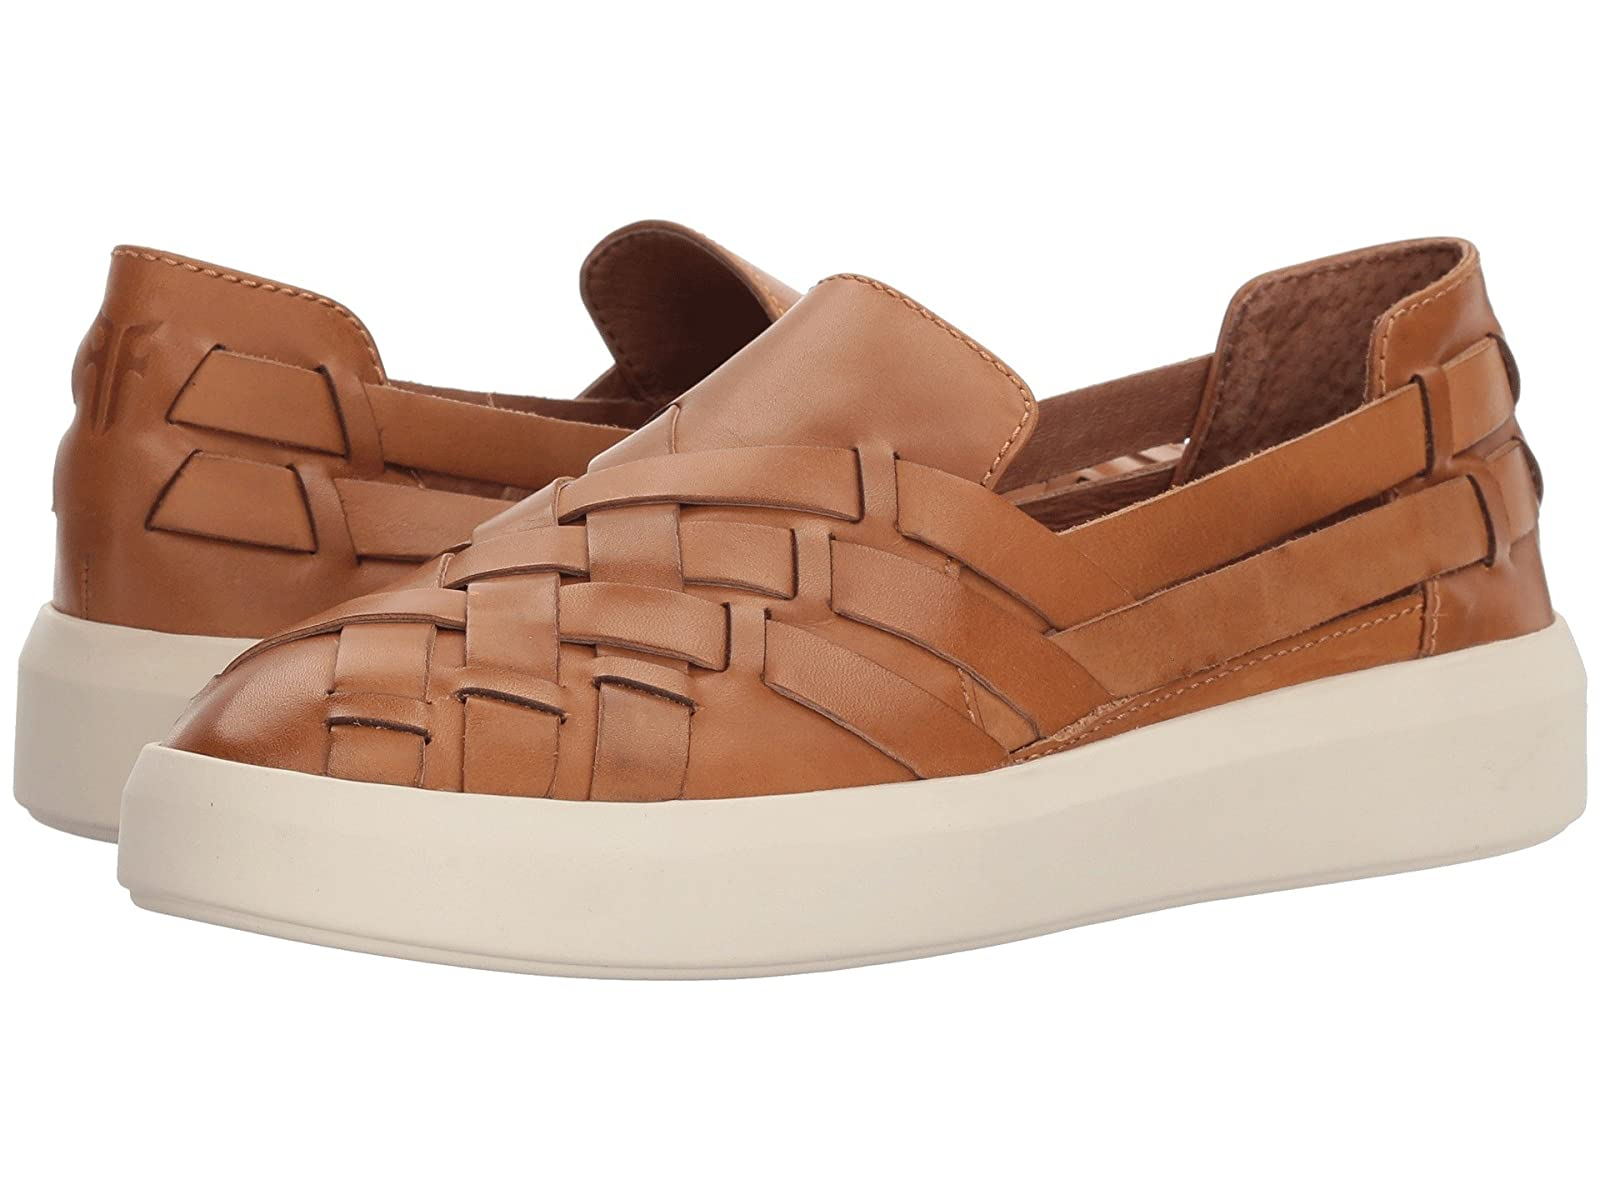 Frye Brea Huarache Slip-OnAtmospheric grades have affordable shoes